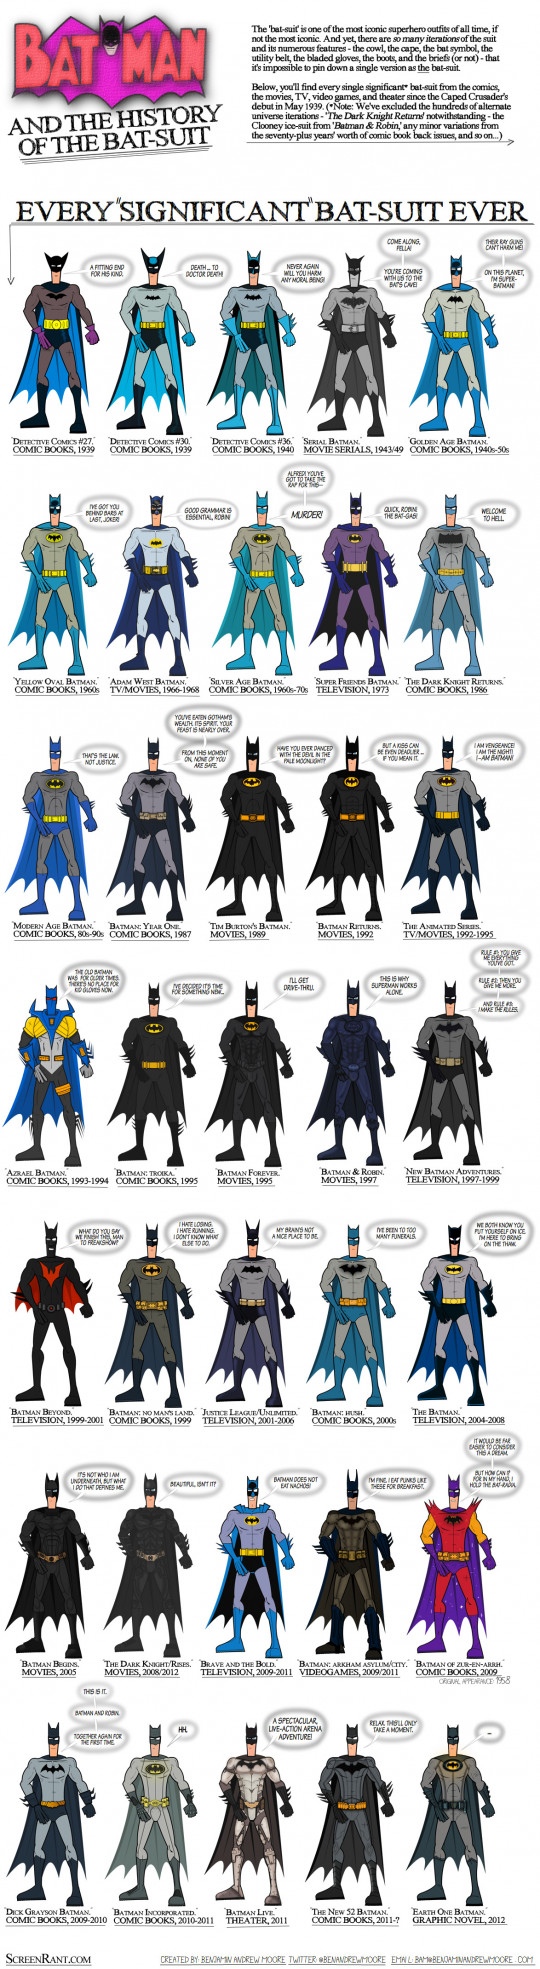 The History of the Batmans Bat Suit